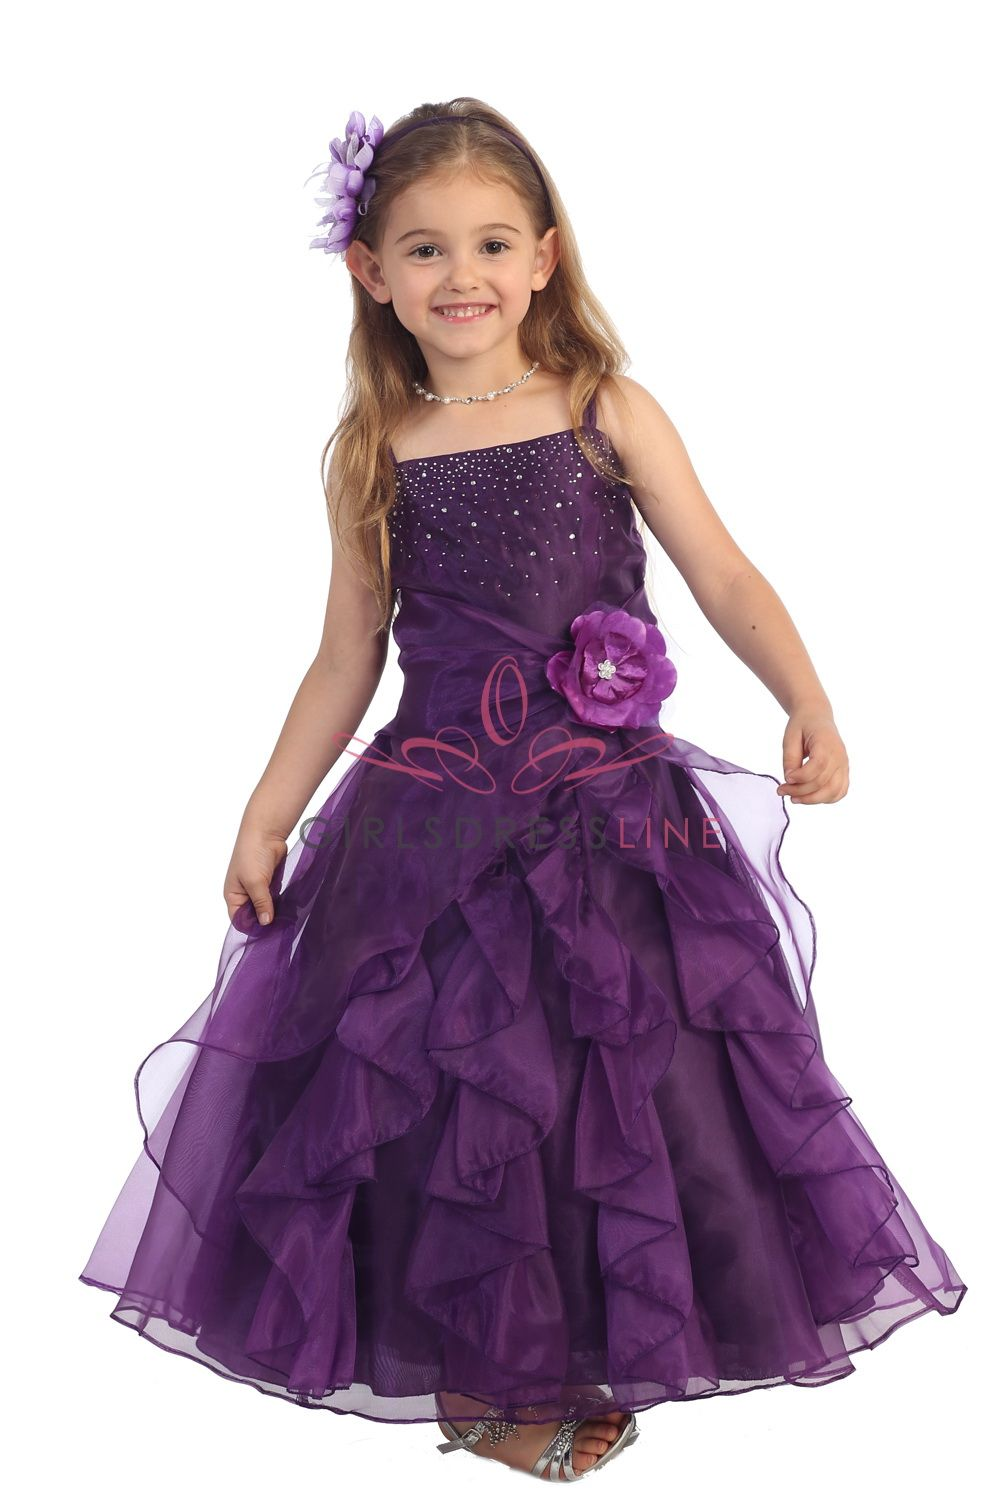 flower girl dresses purple - Kathryn-2 | Dressing Up | Pinterest ...